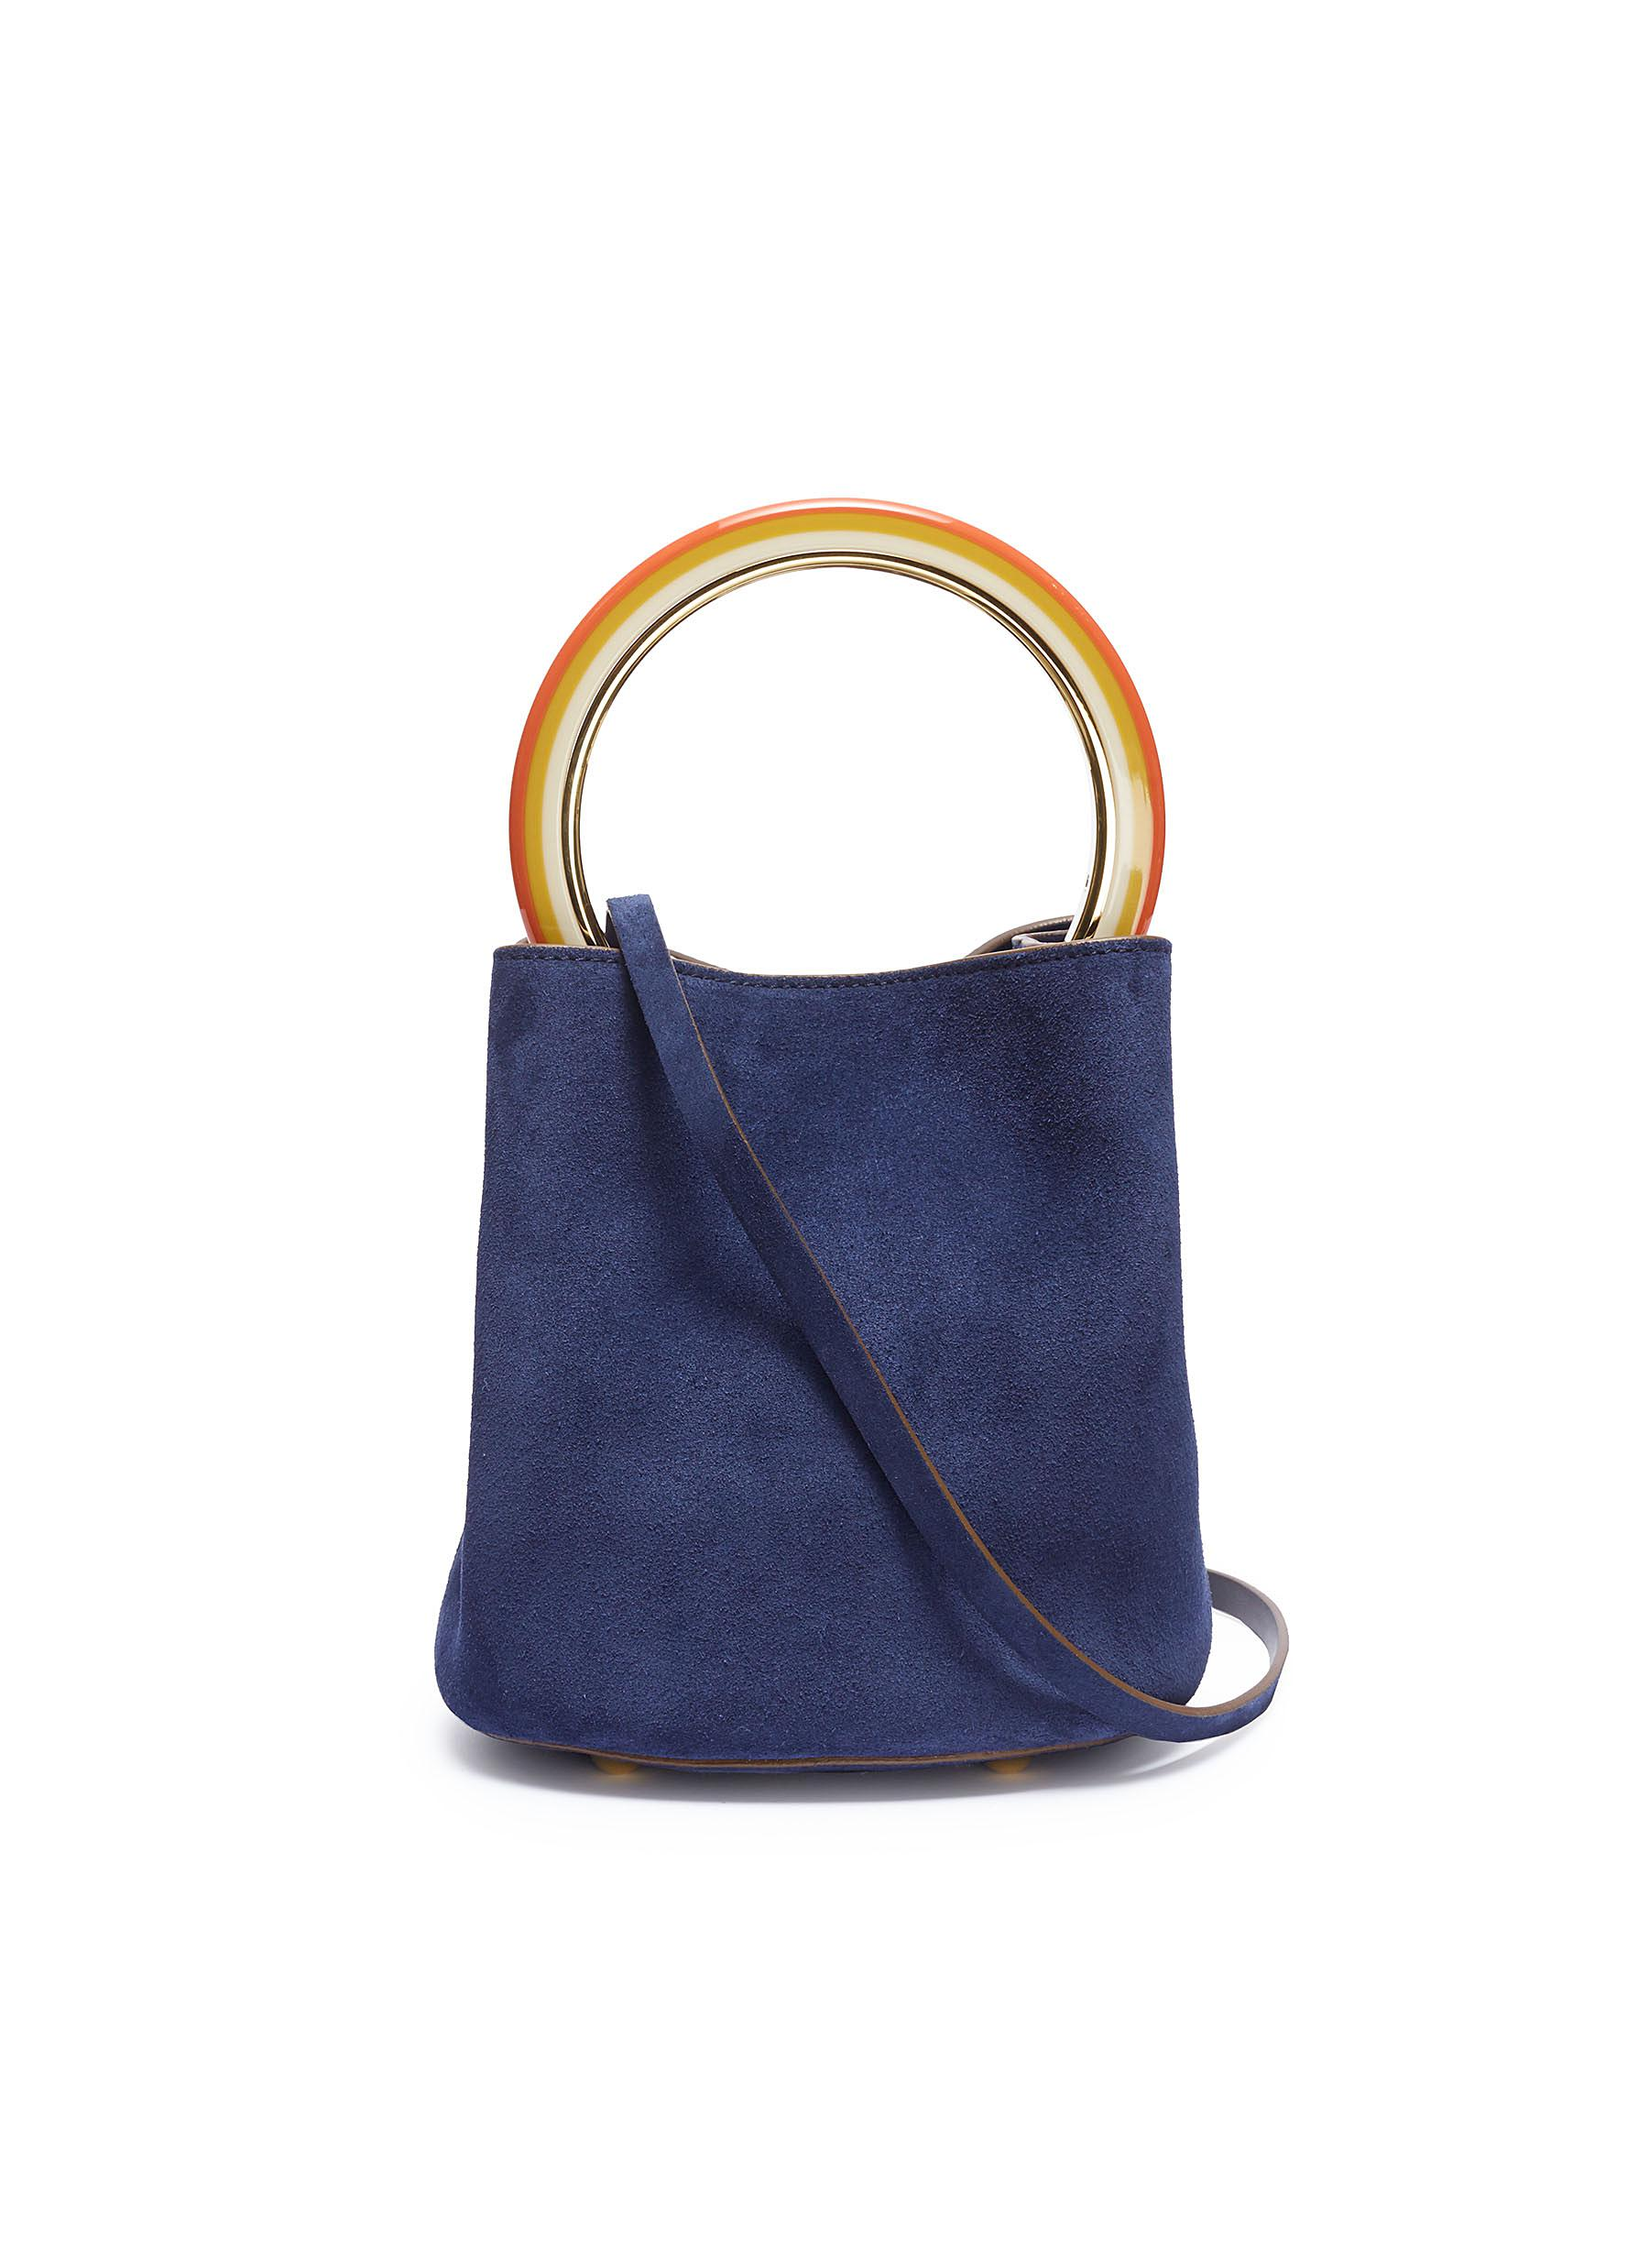 78d0b51be238 Main view click to enlarge marni pannier small ring handle suede jpg  1800x2475 Marni suede bag